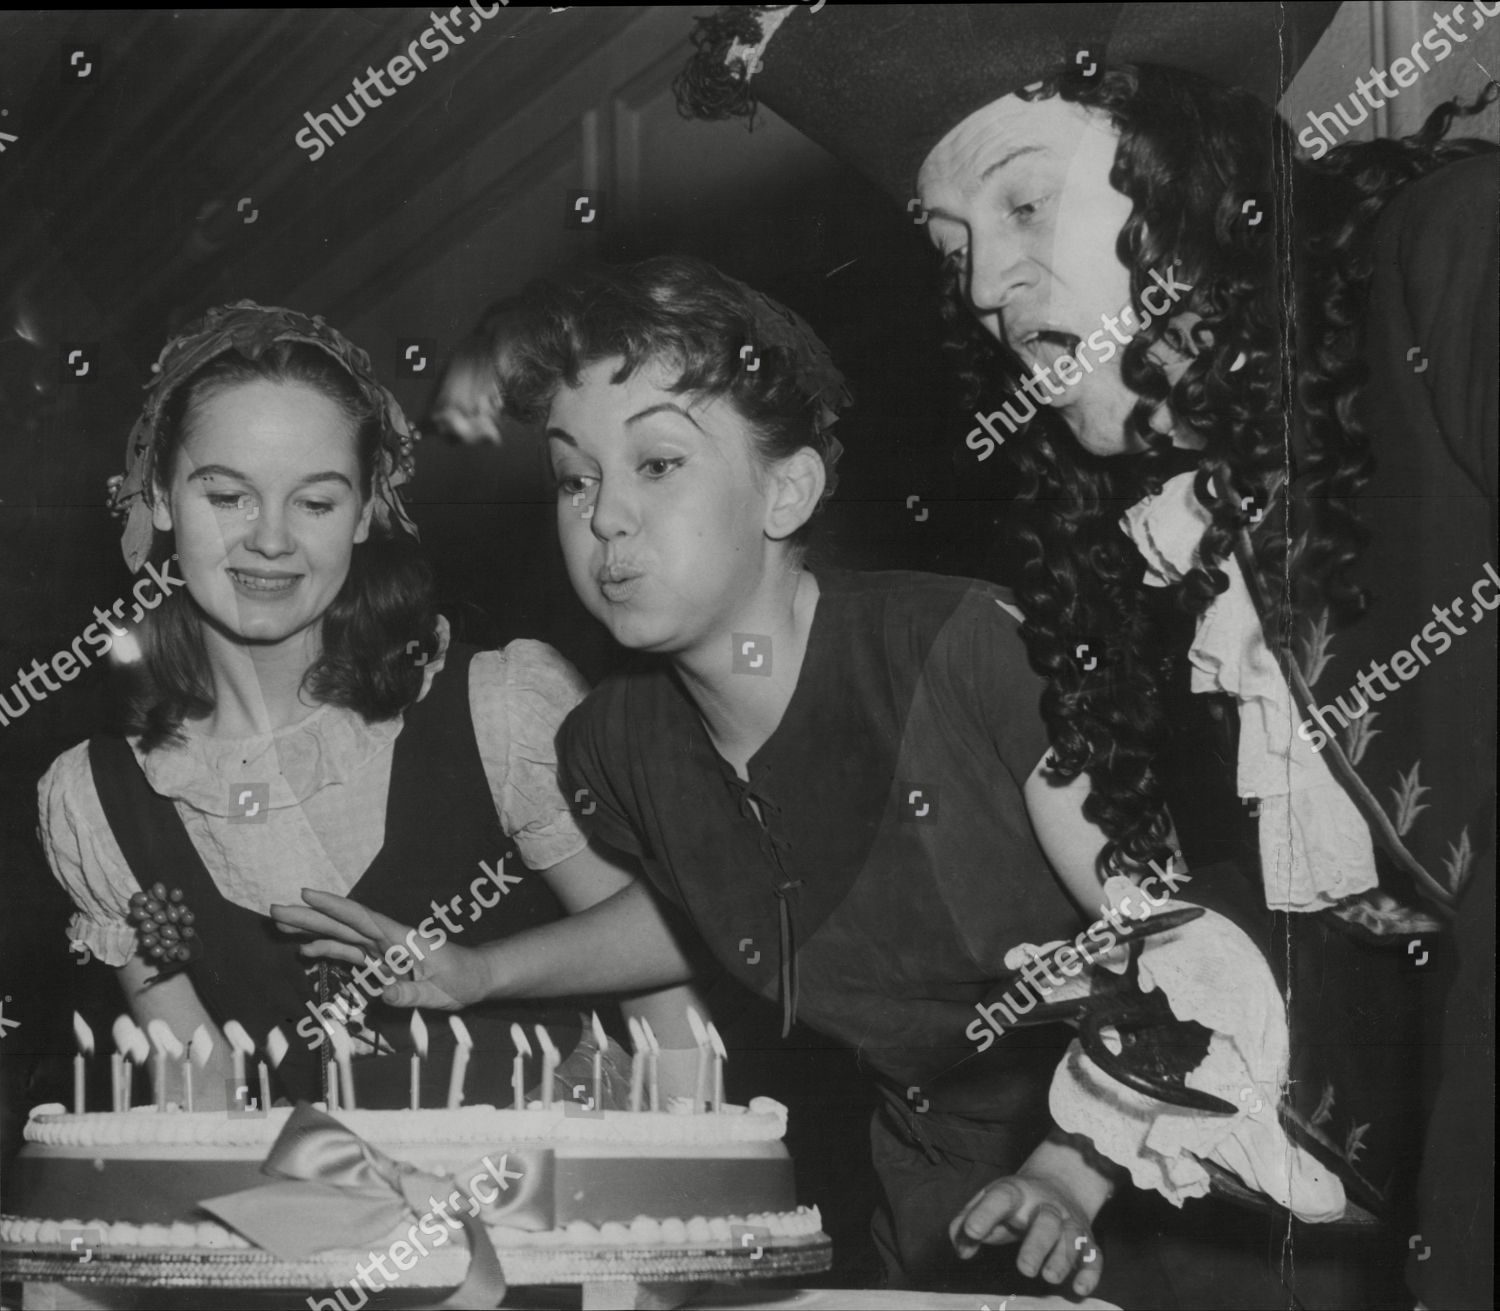 Stock photo of Actress Janette Scott As Peter Pan Blows Out Candles On Her Cake On Her 18th Birthday At Scala Theatre London With Actor John Mccallum As Captain Hook And Frances Guthrie As Wendy